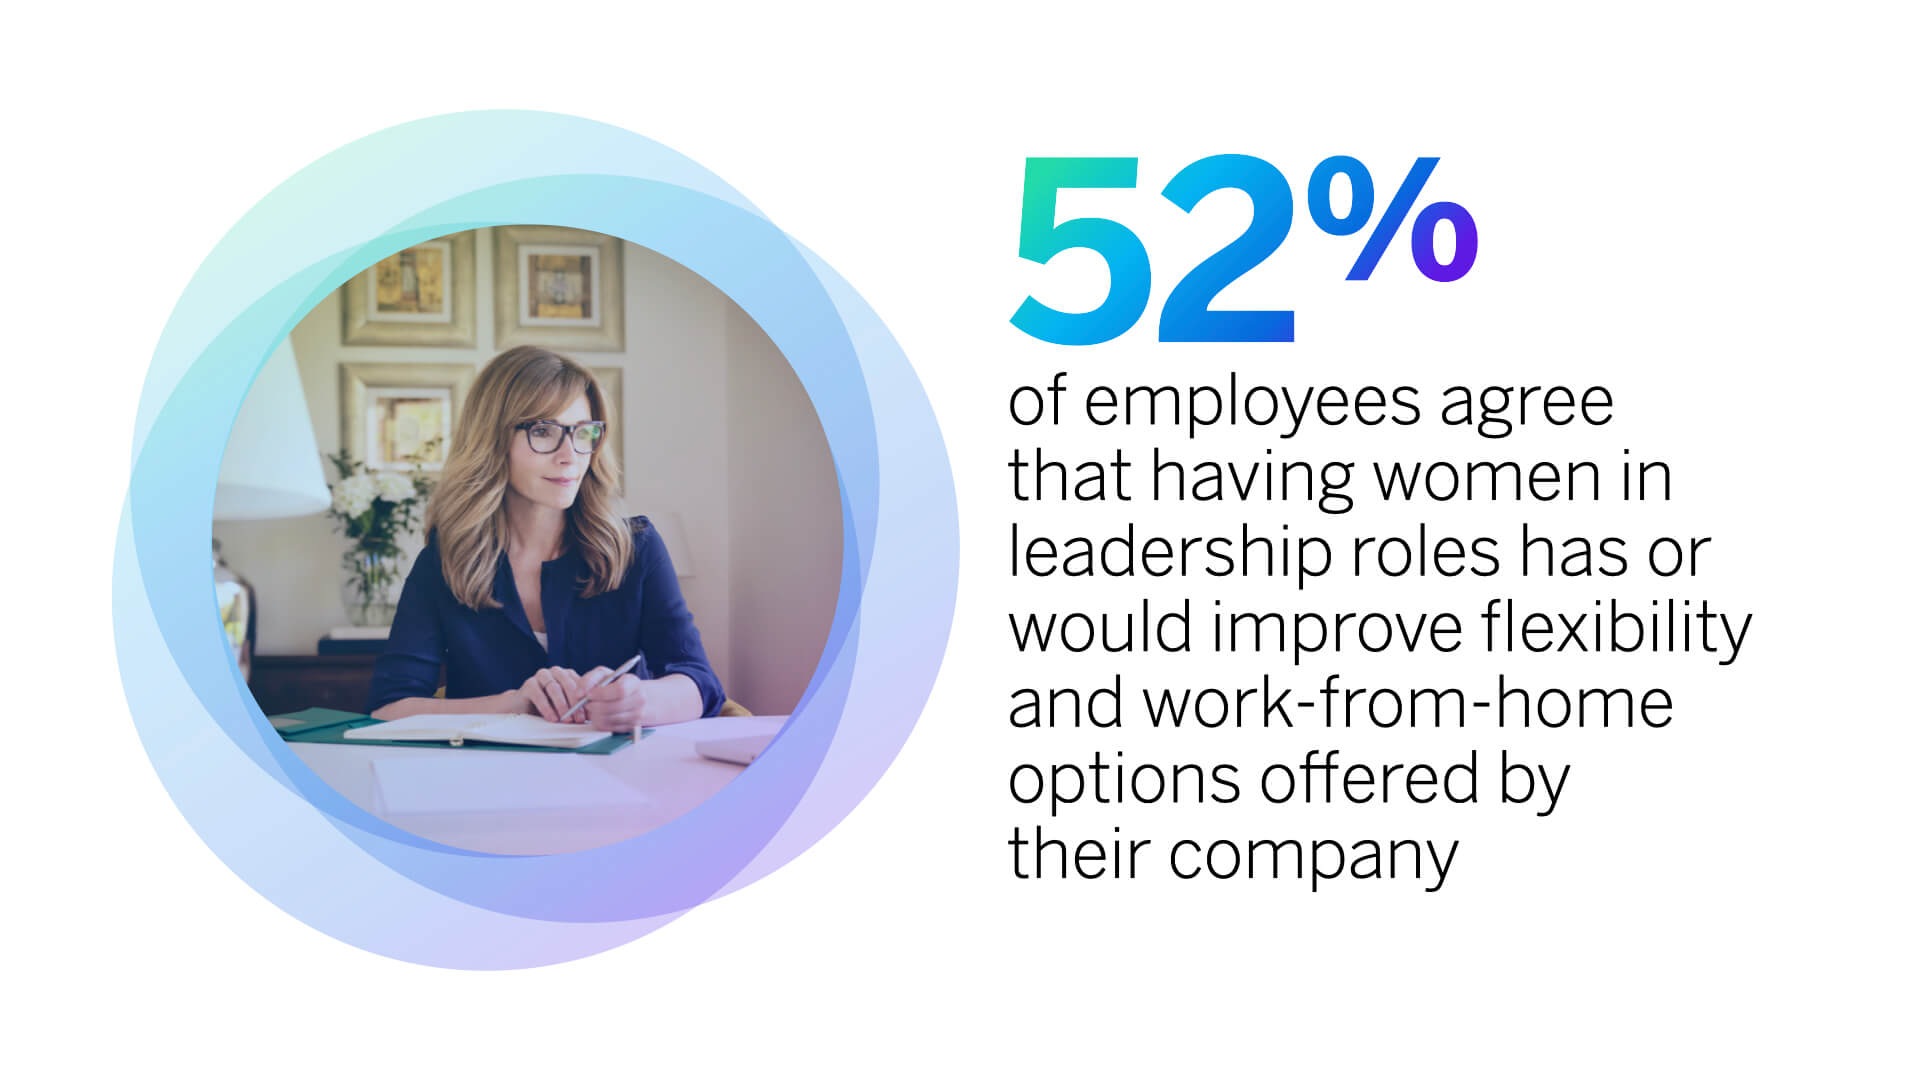 Having women in leadership roles improves flexibility and work-from-home options